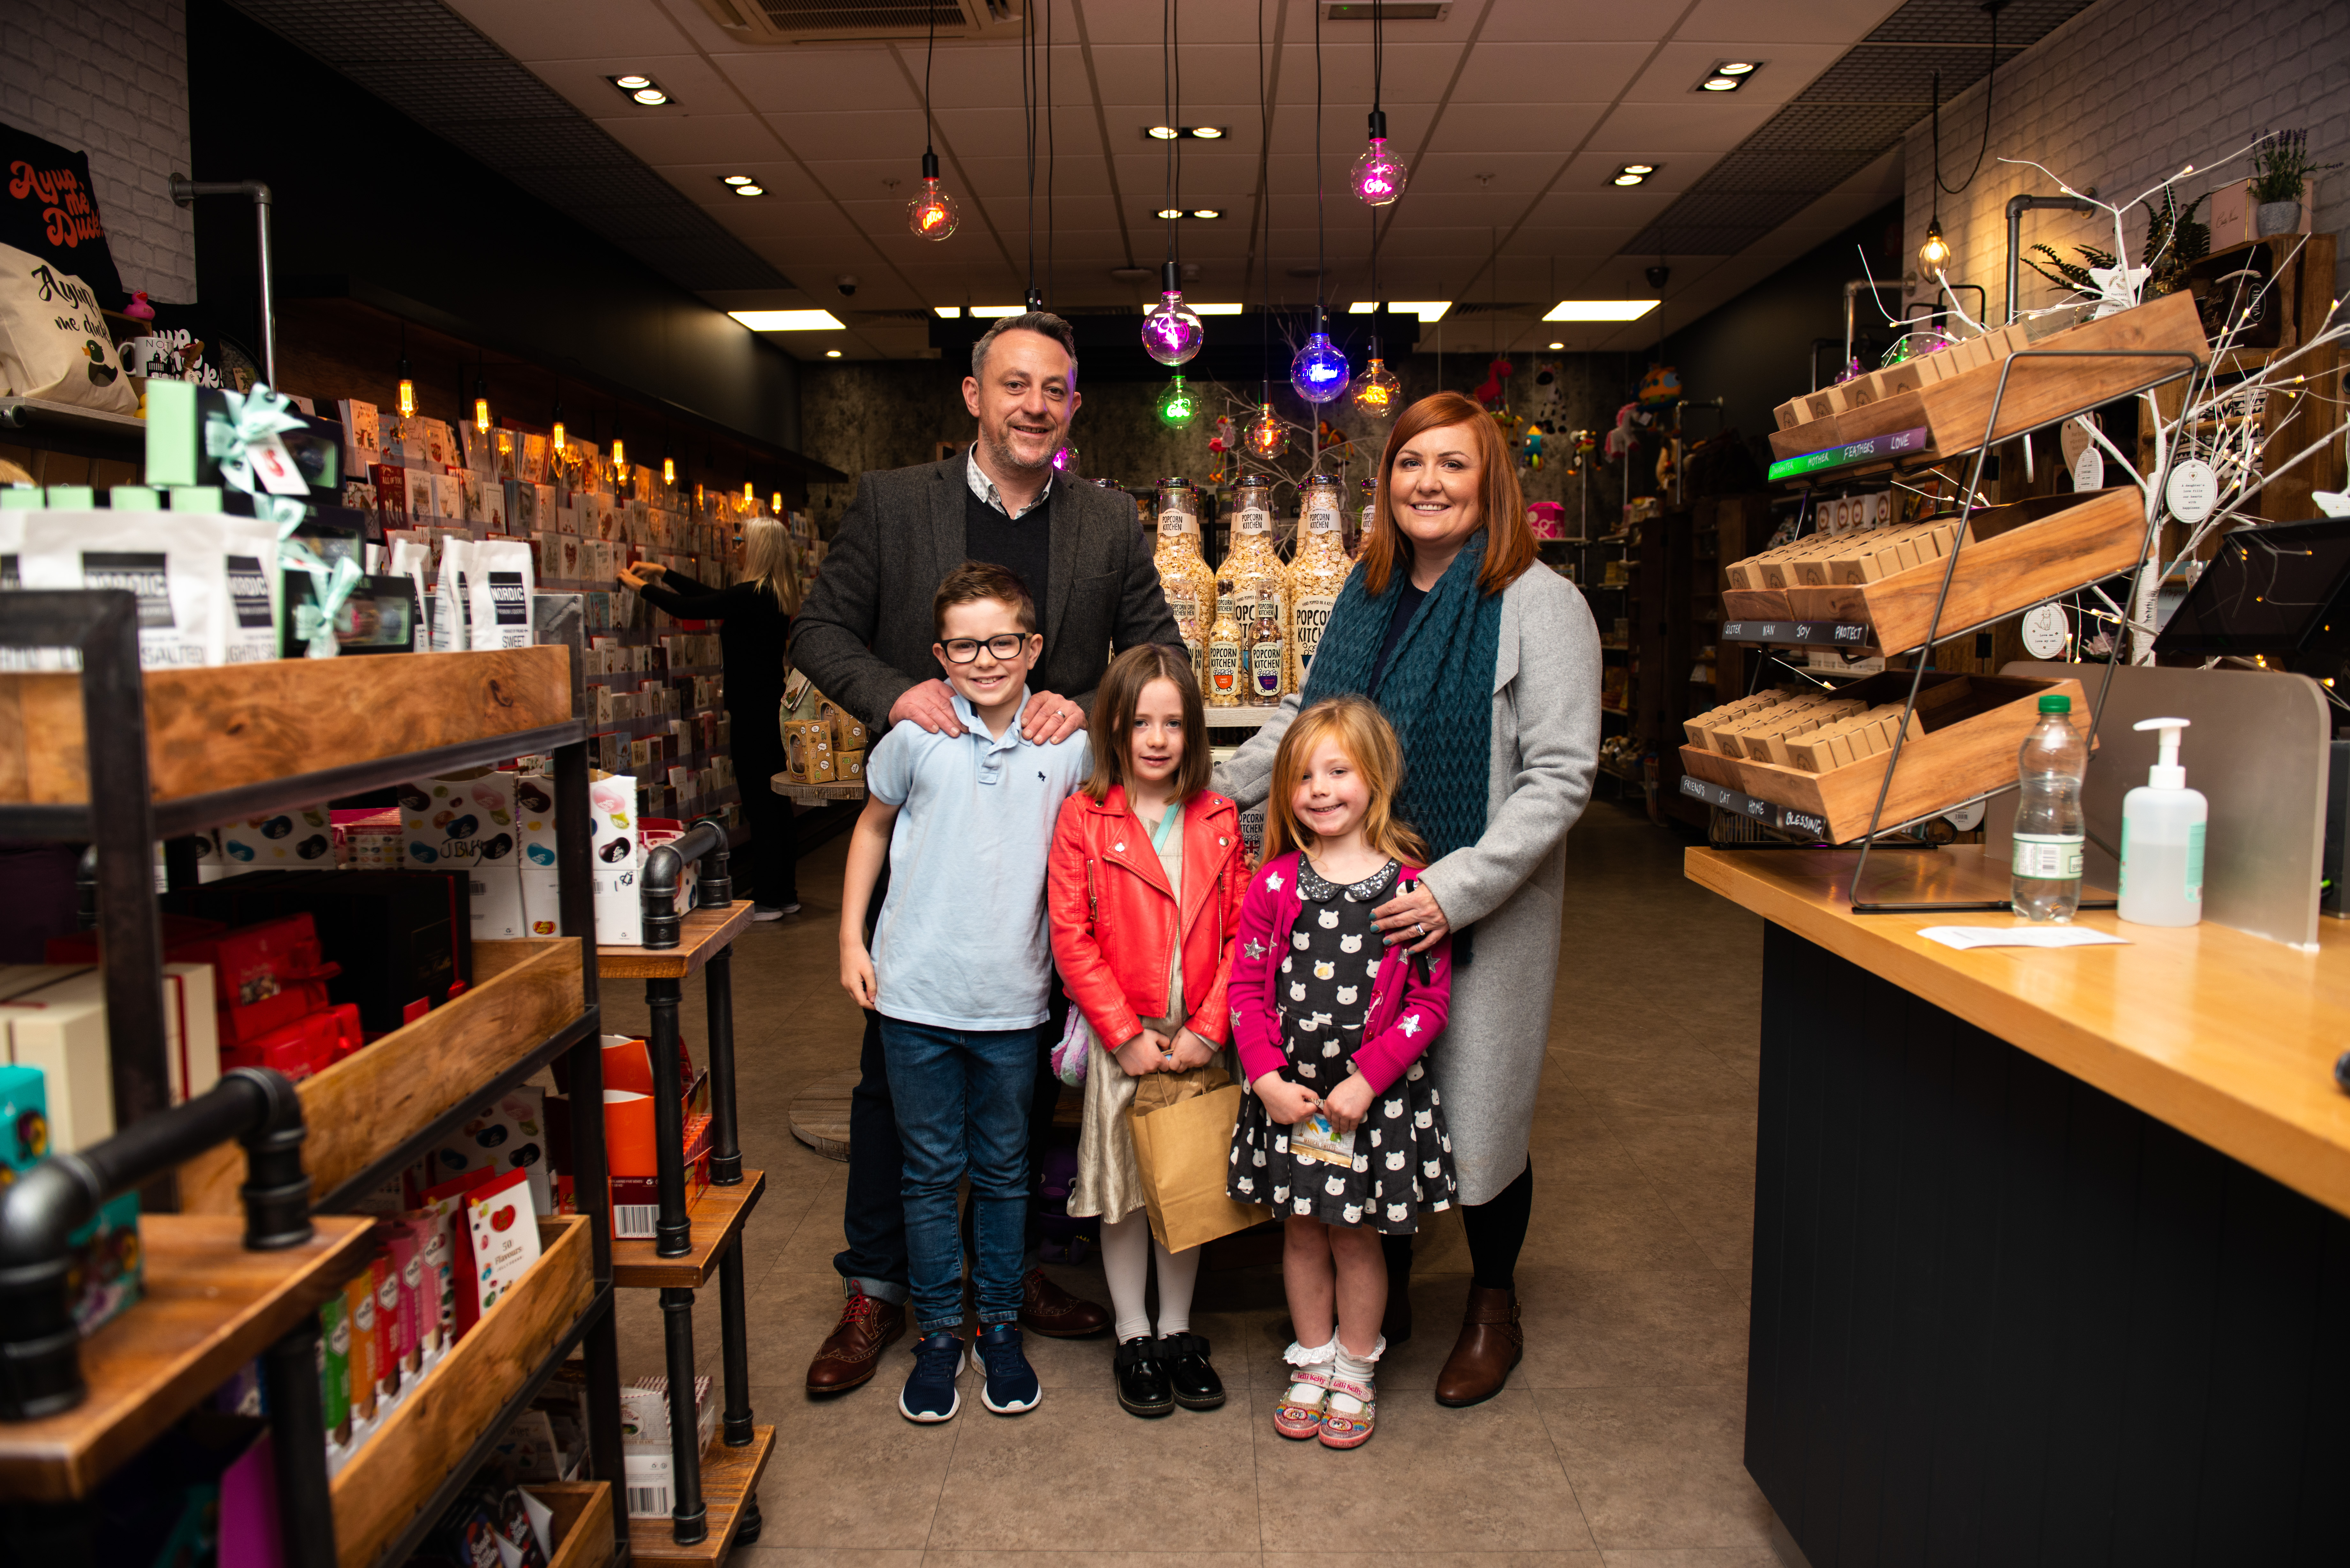 Above: Mark Rees and his wife Katy with their children Henry, Lucy and Alice inside the Henry & Co shop in Nottingham.